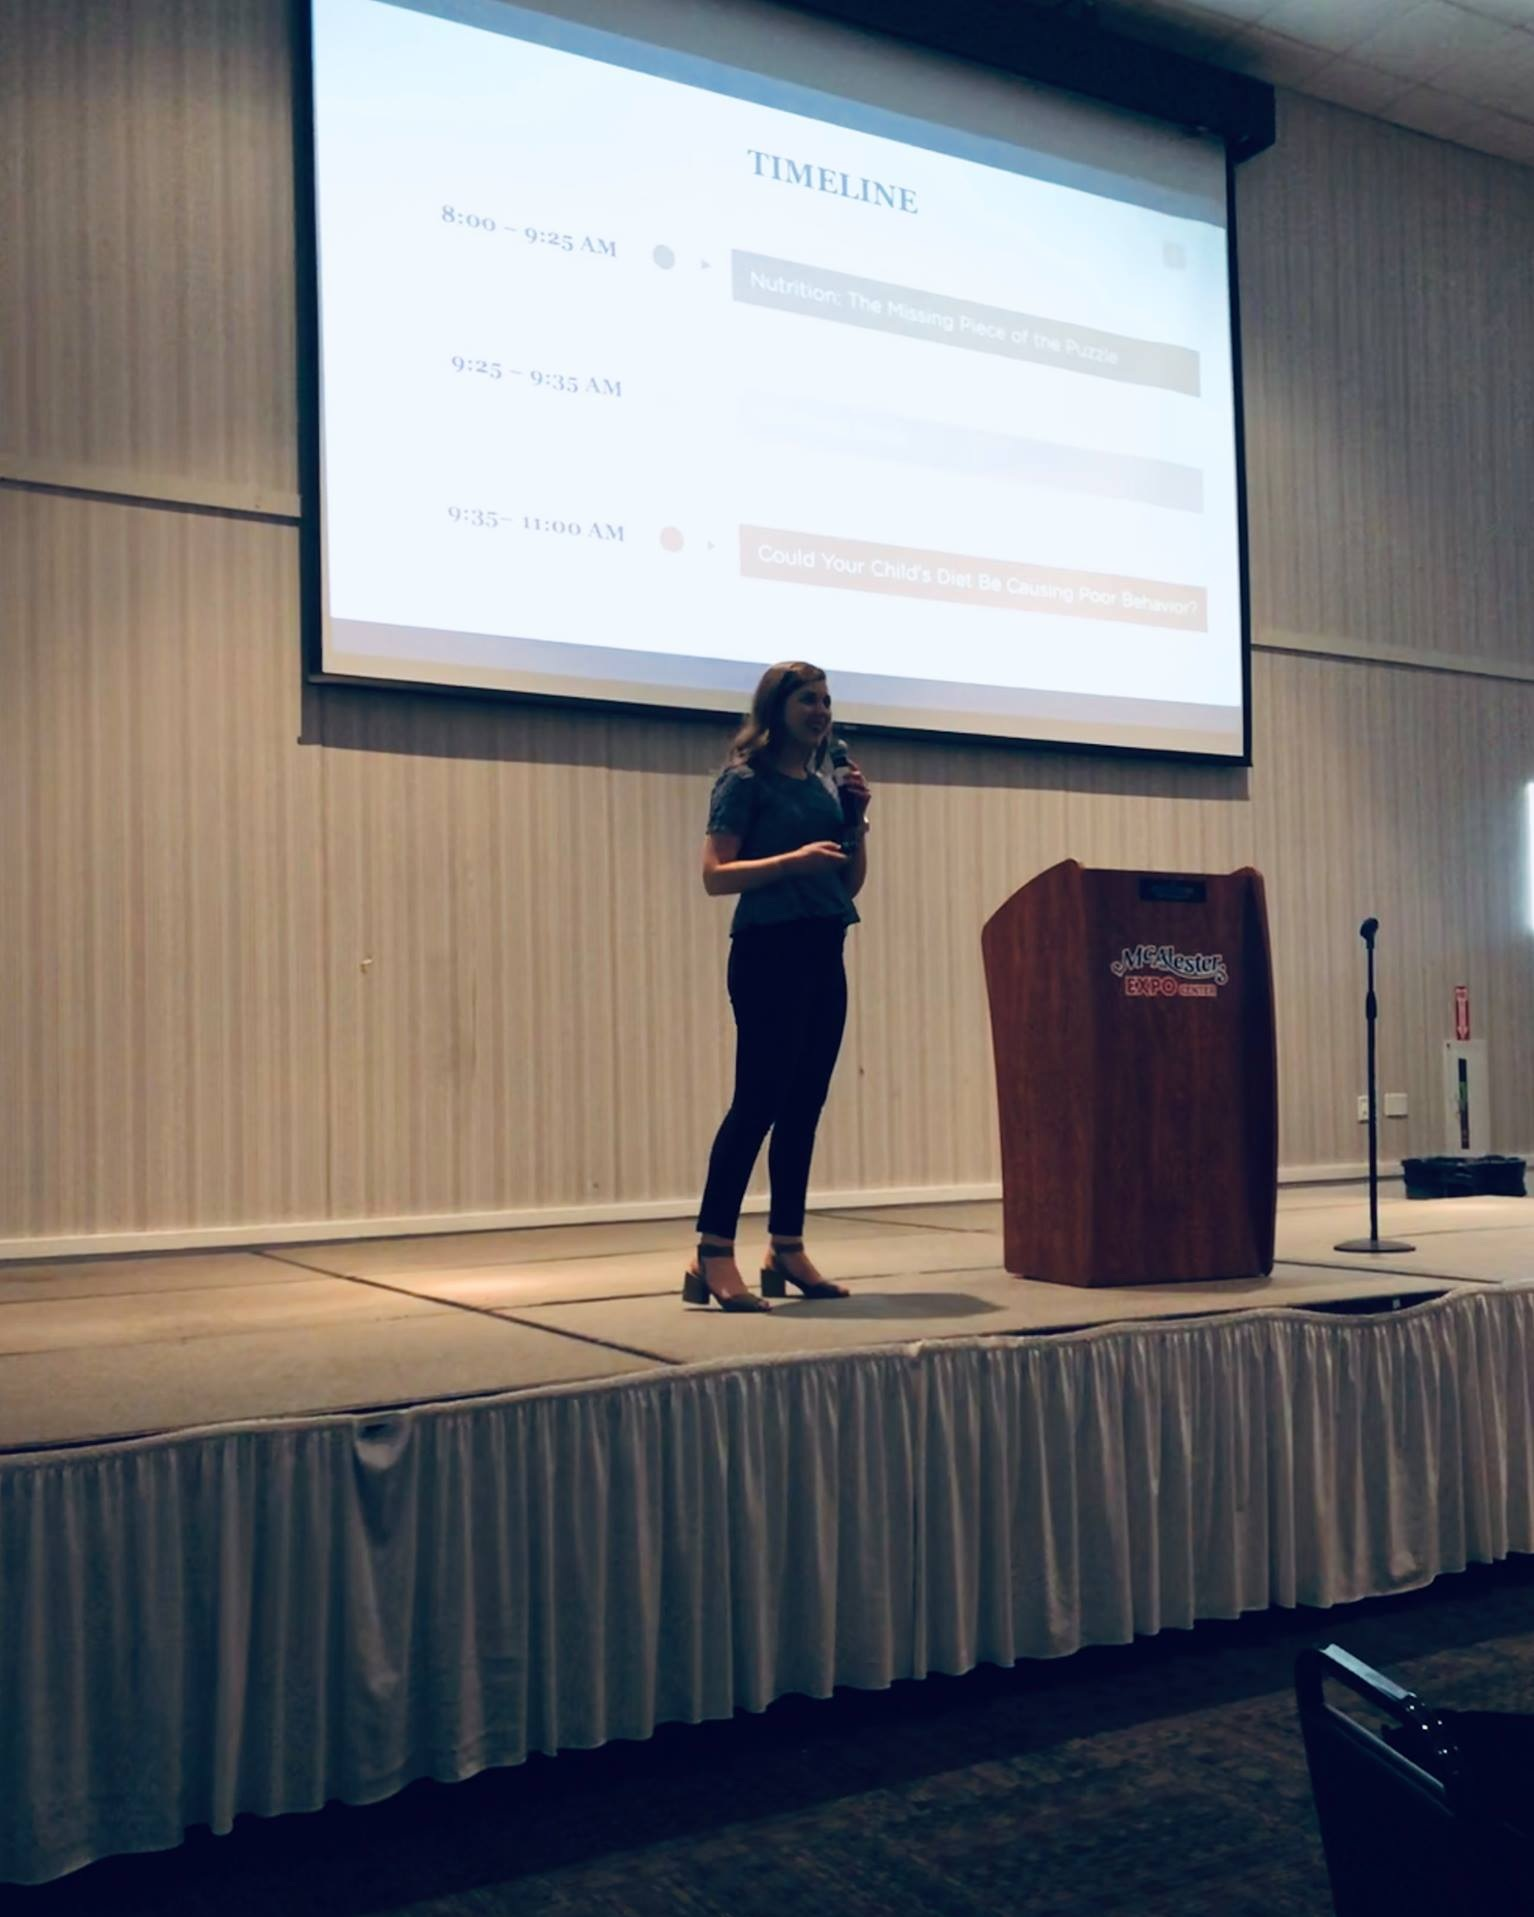 Speaking at the Early Childhood Conference in McAlester, OK in 2019